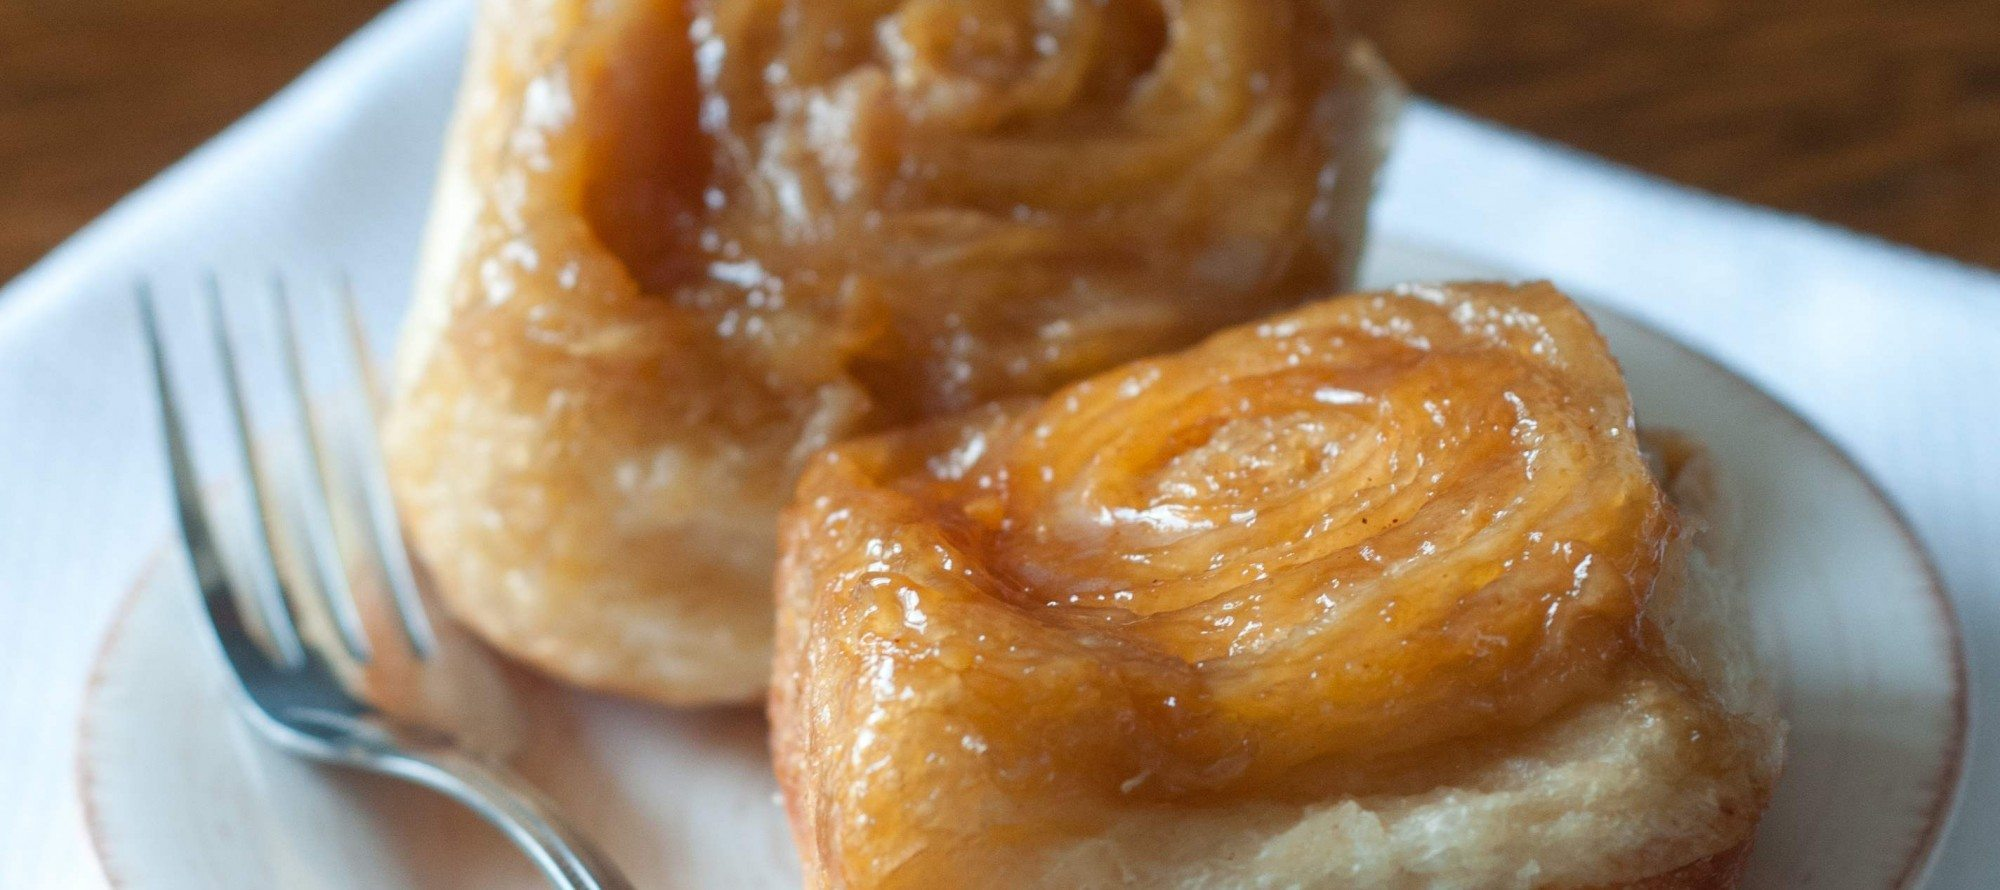 STICKY BUN OF THE DAY! An ethereal caramel creation from 3 Tarts